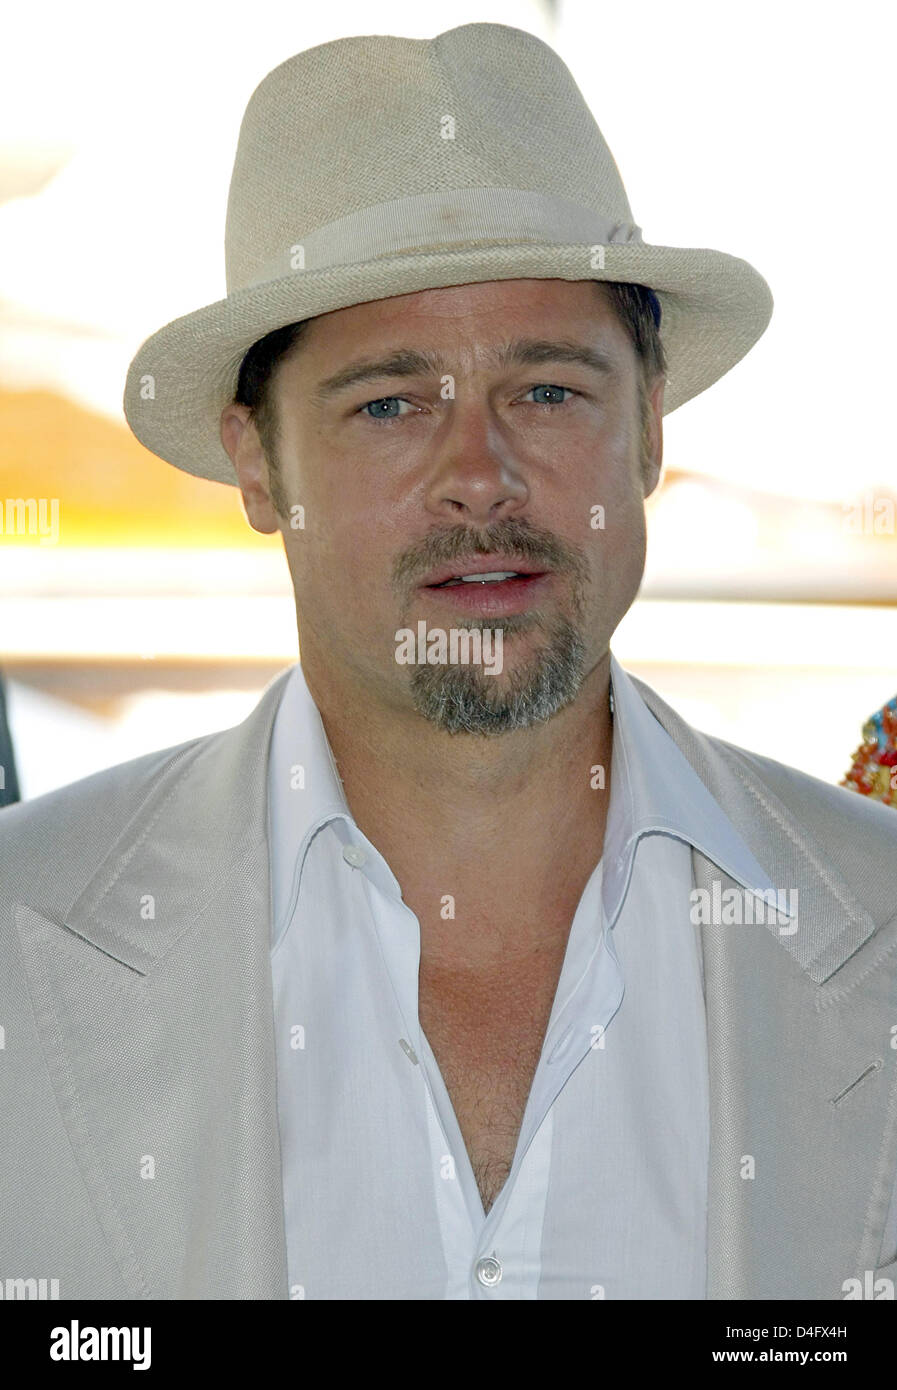 d556ff74be3 Actor Brad Pitt attends the photocall for the movie  Burn After Reading  at  the 65th Venice Film Festival